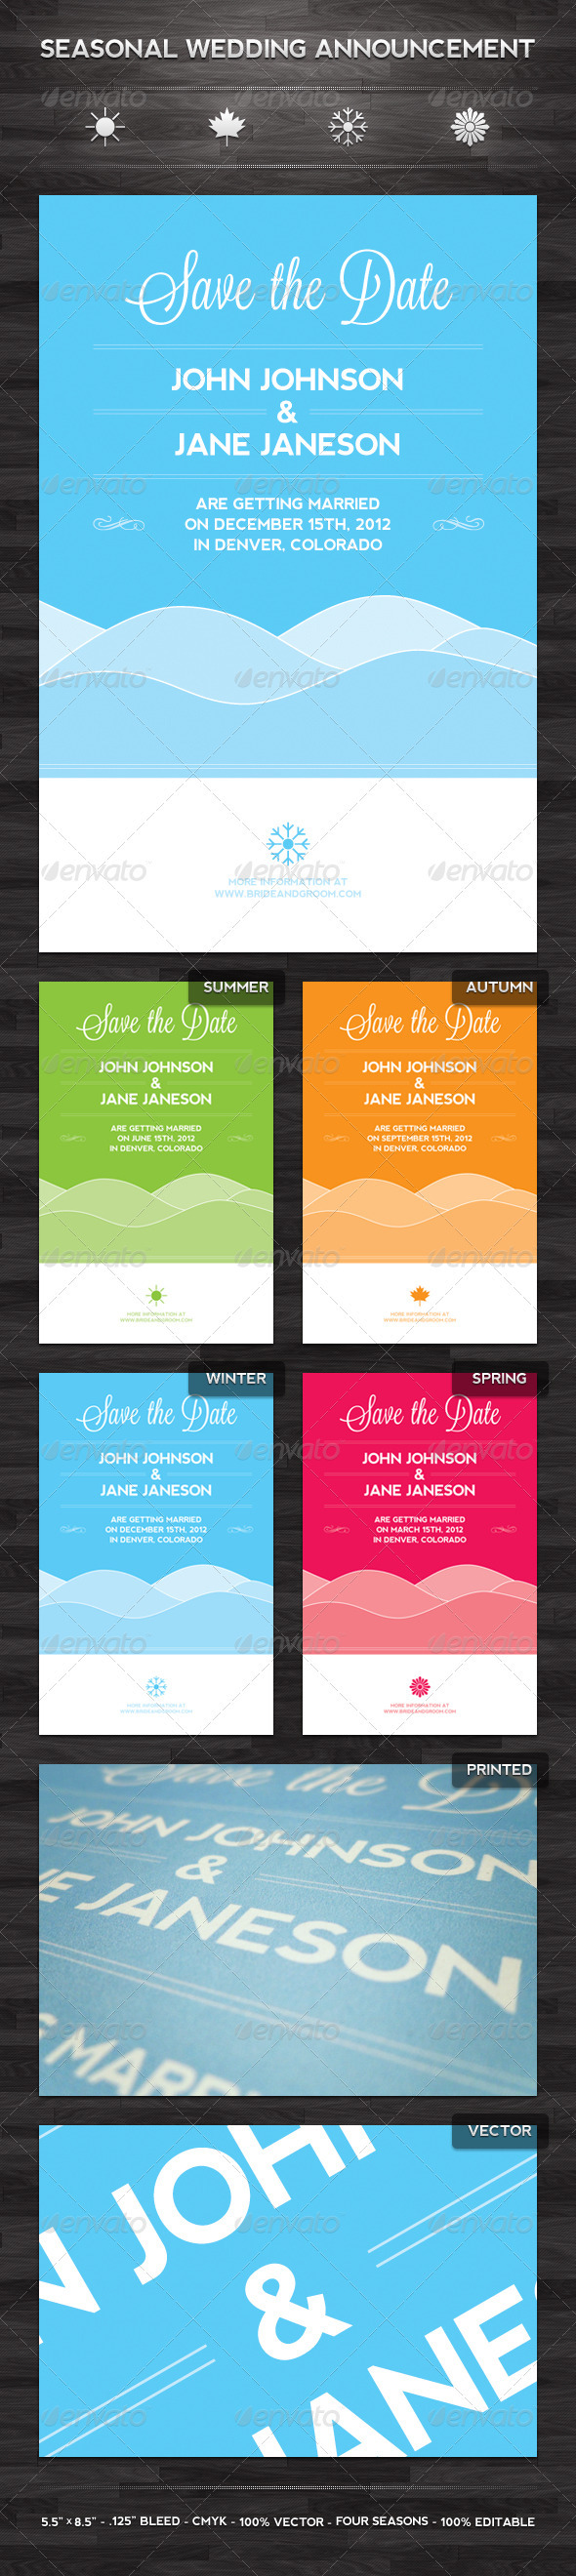 Seasonal Wedding Announcement Template - Holiday Greeting Cards